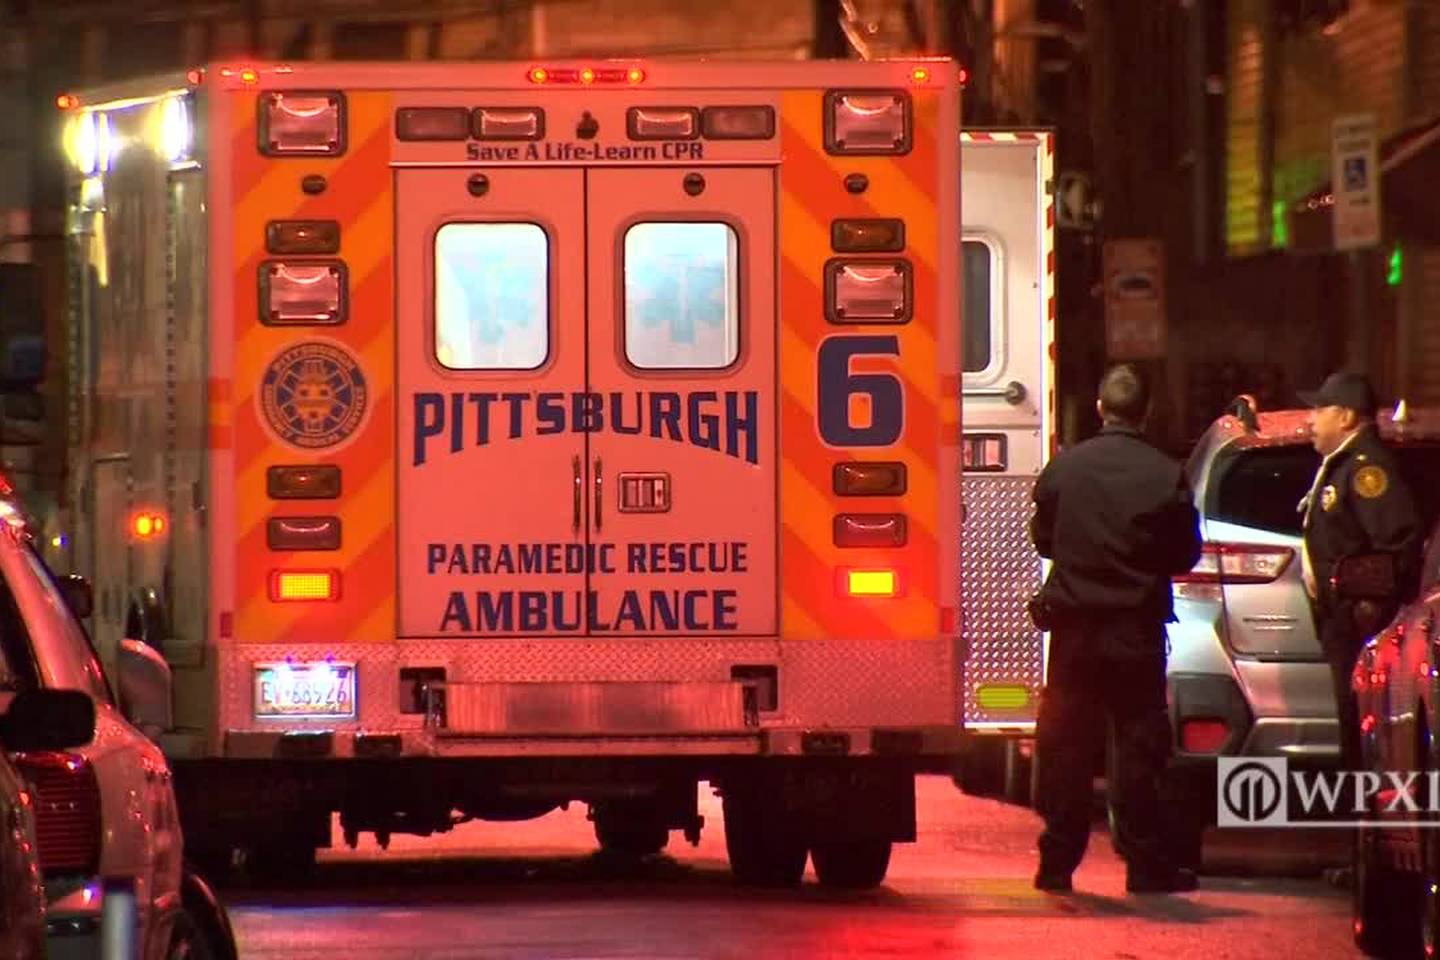 Man stays at bar for 30 minutes after being stabbed, police say